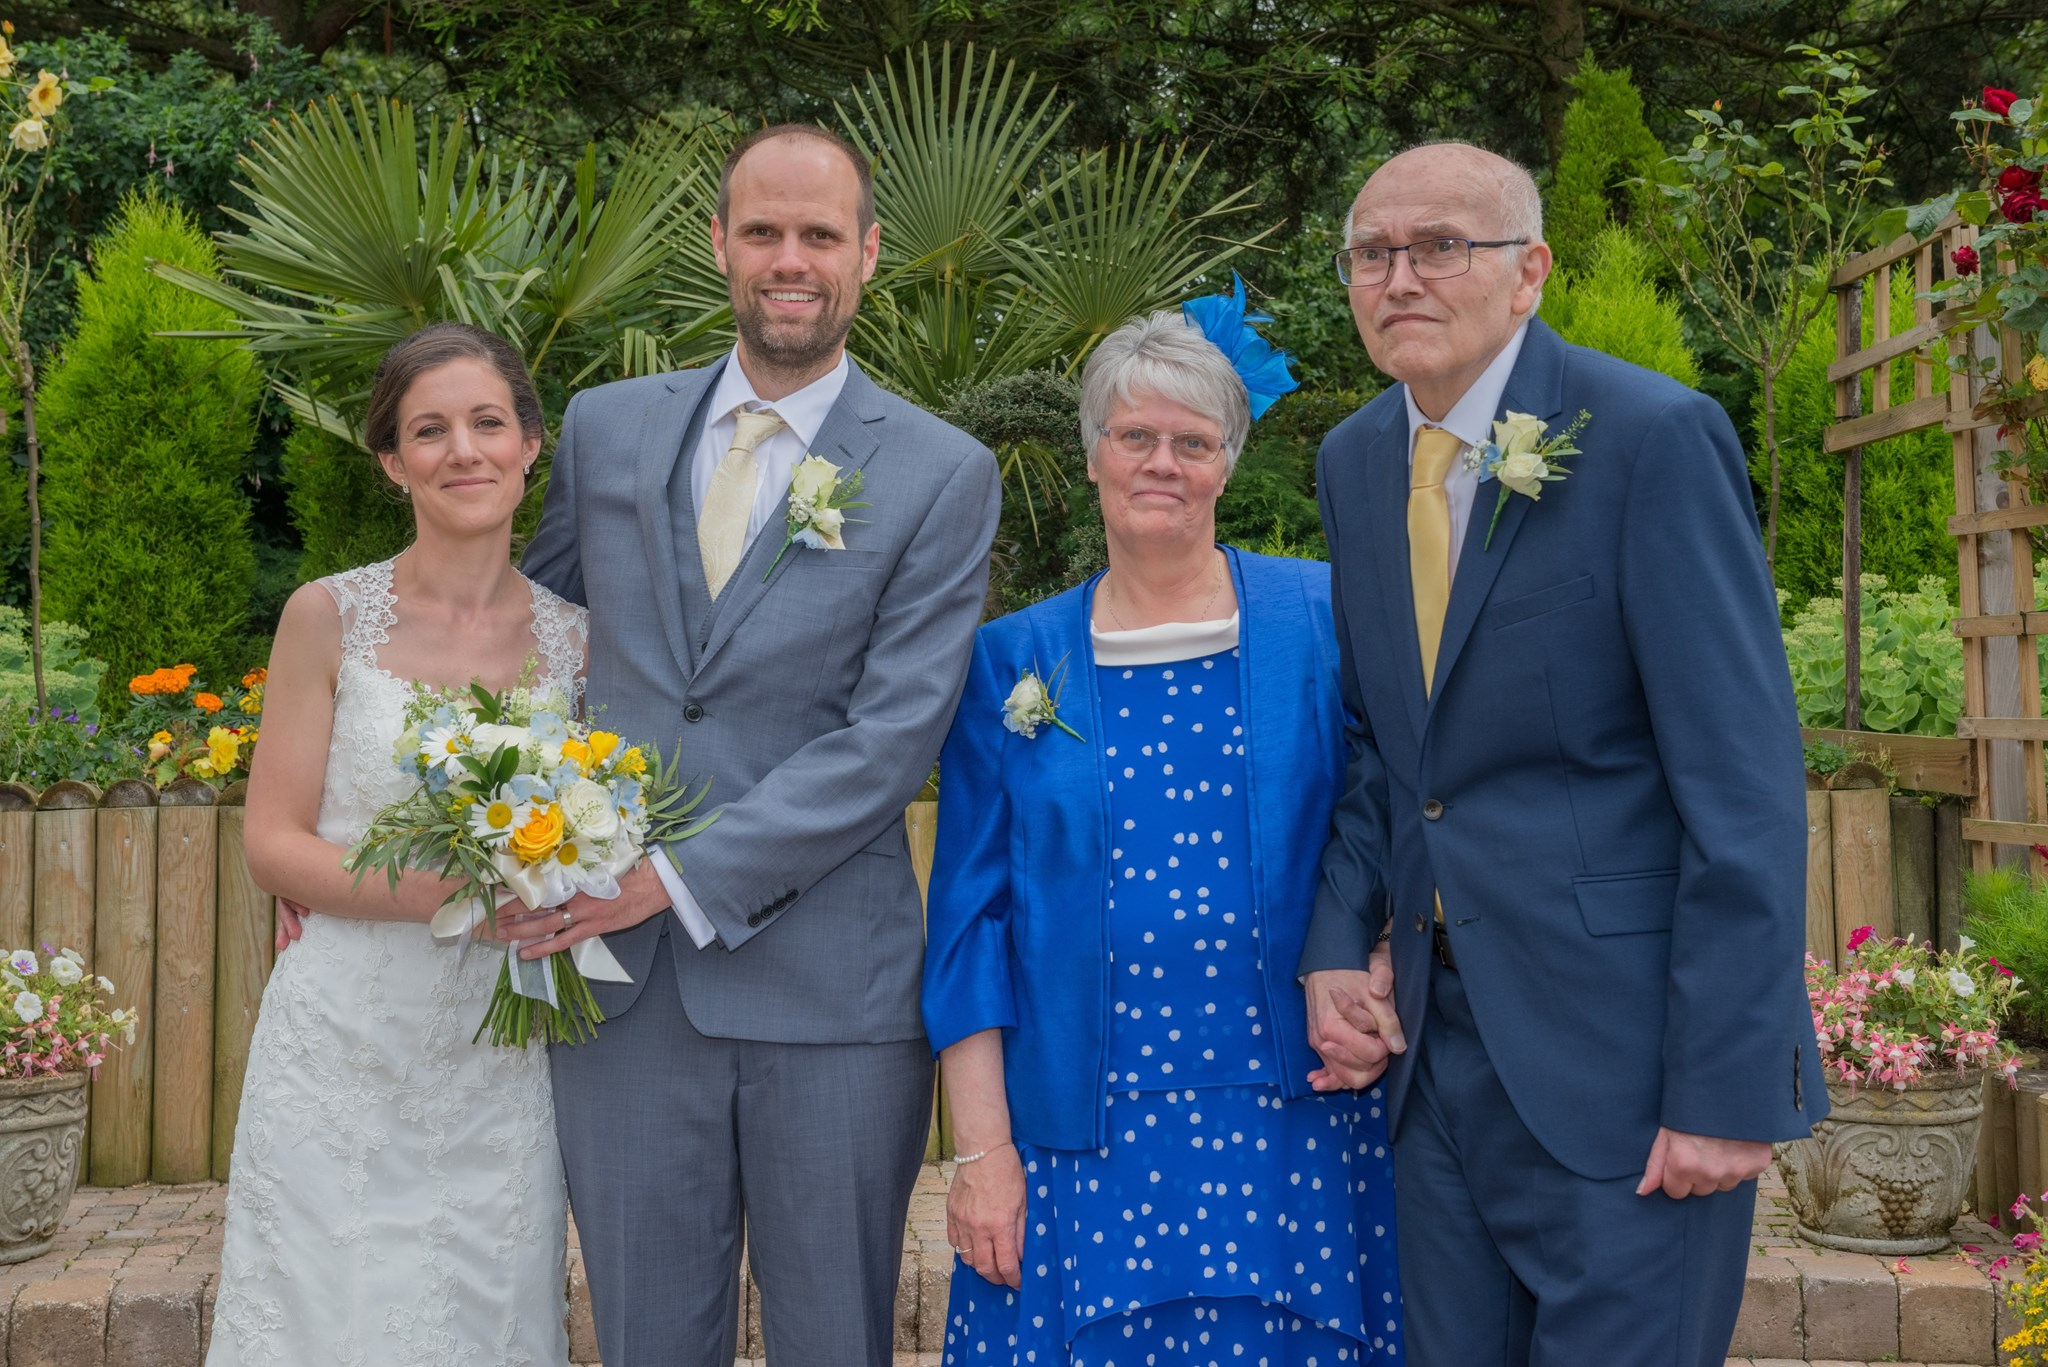 Me, Jo, Dad & Mum - Our Wedding July 2017